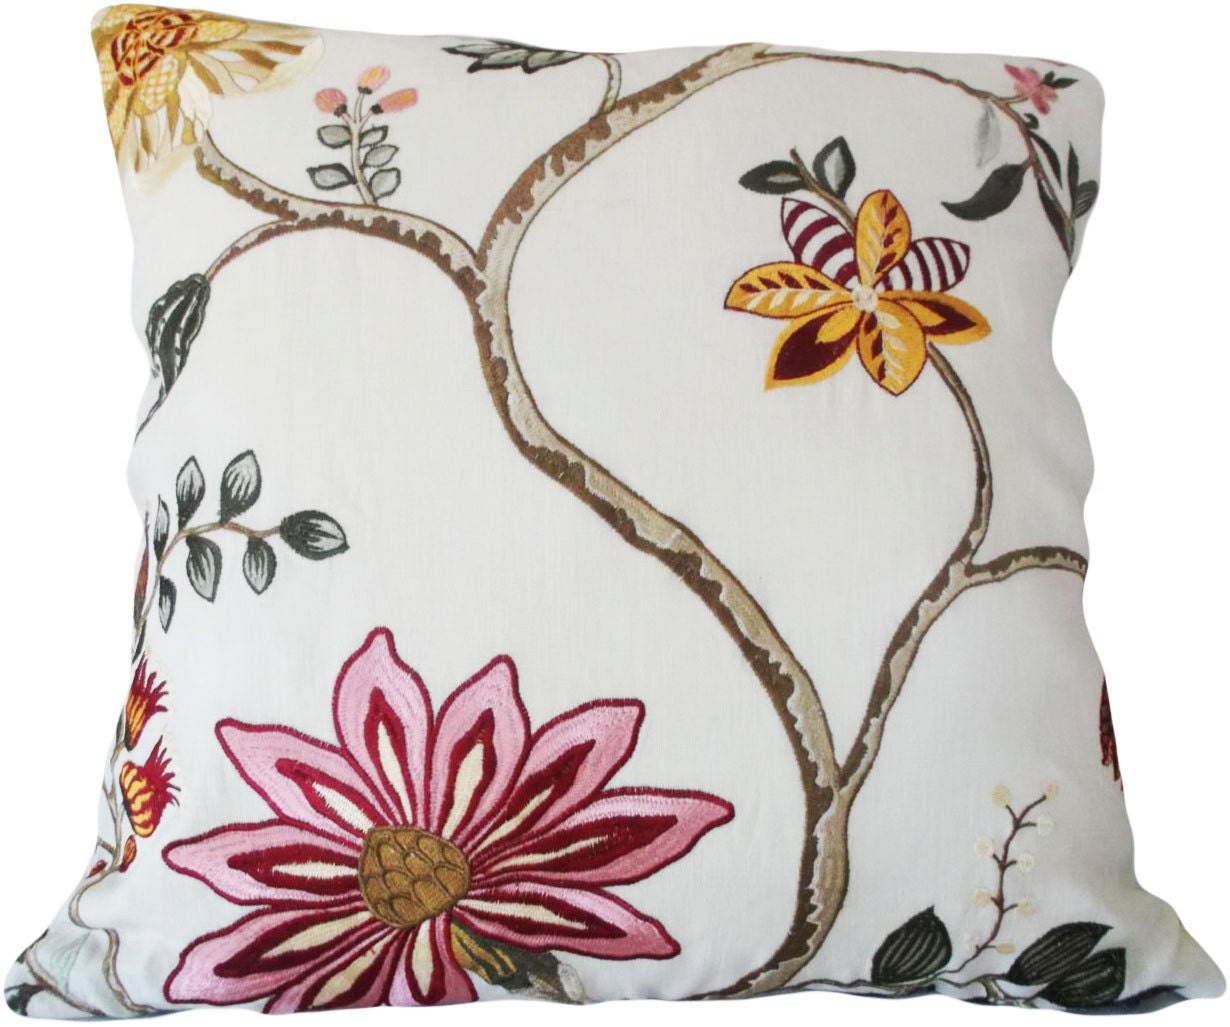 Floral Embroidered Decorative Pillow : Pink Gold Floral Embroidered Decorative Pillow Cover Throw